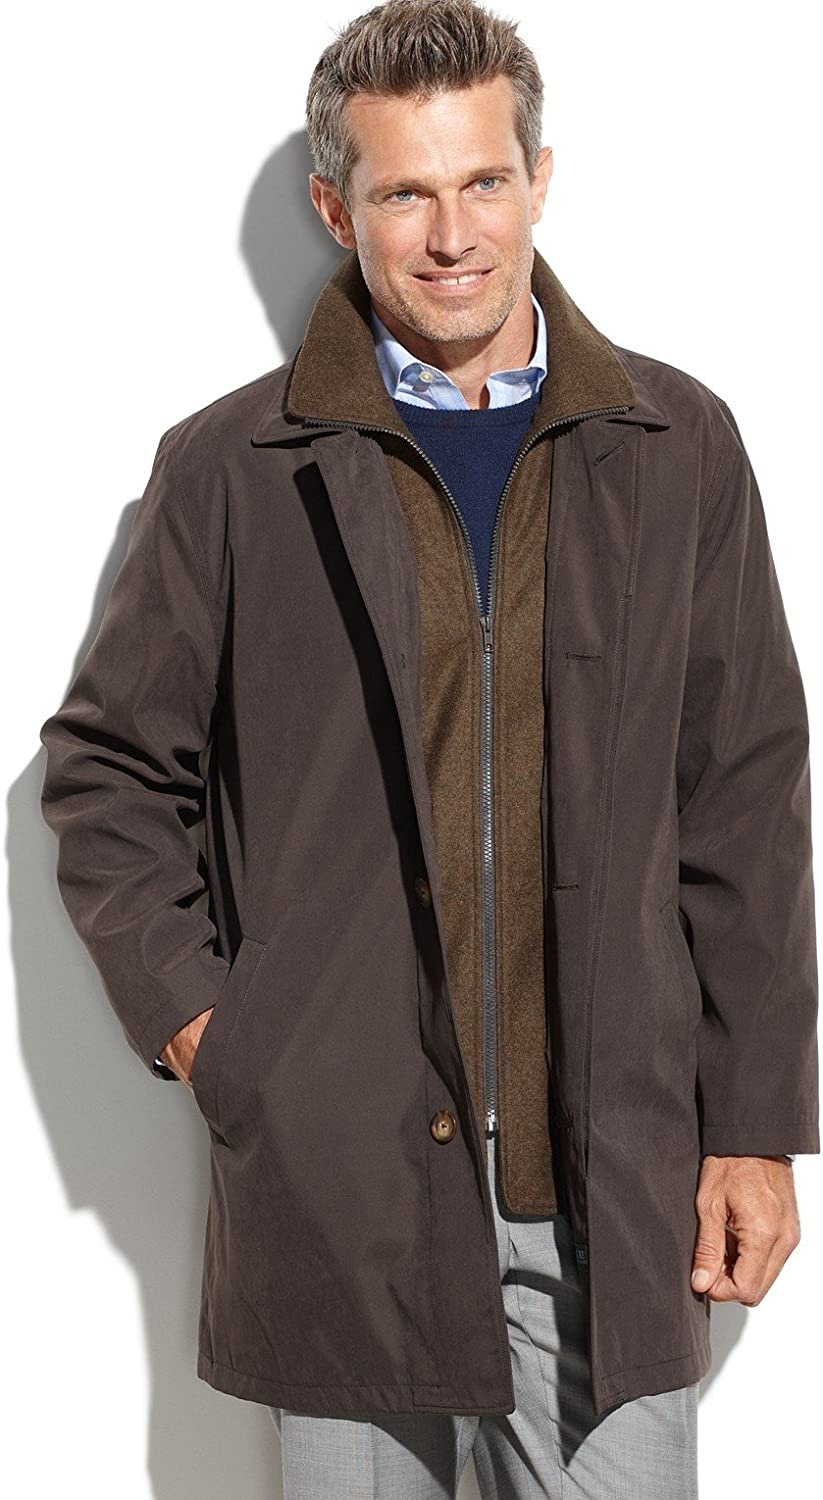 Lauren Ralph Edgar Raincoat Industry No. 1 Men's wear Top Casual Ove Free shipping anywhere in the nation off